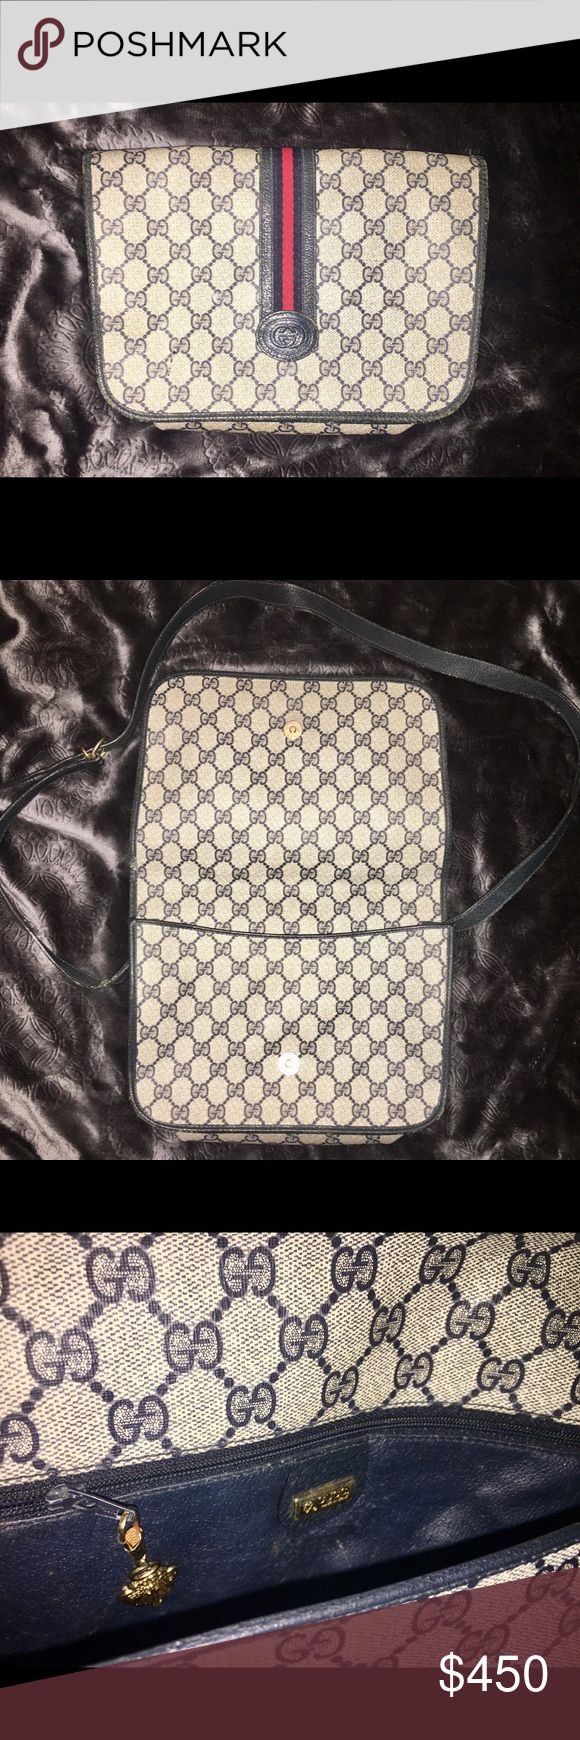 Vintage Gucci Messenger Bag Vintage Gucci messenger bag. Slight signs of wear and tear but overall looks great for its age. Cream and Dark Navy. Serial number in photos. Gucci Bags Crossbody Bags